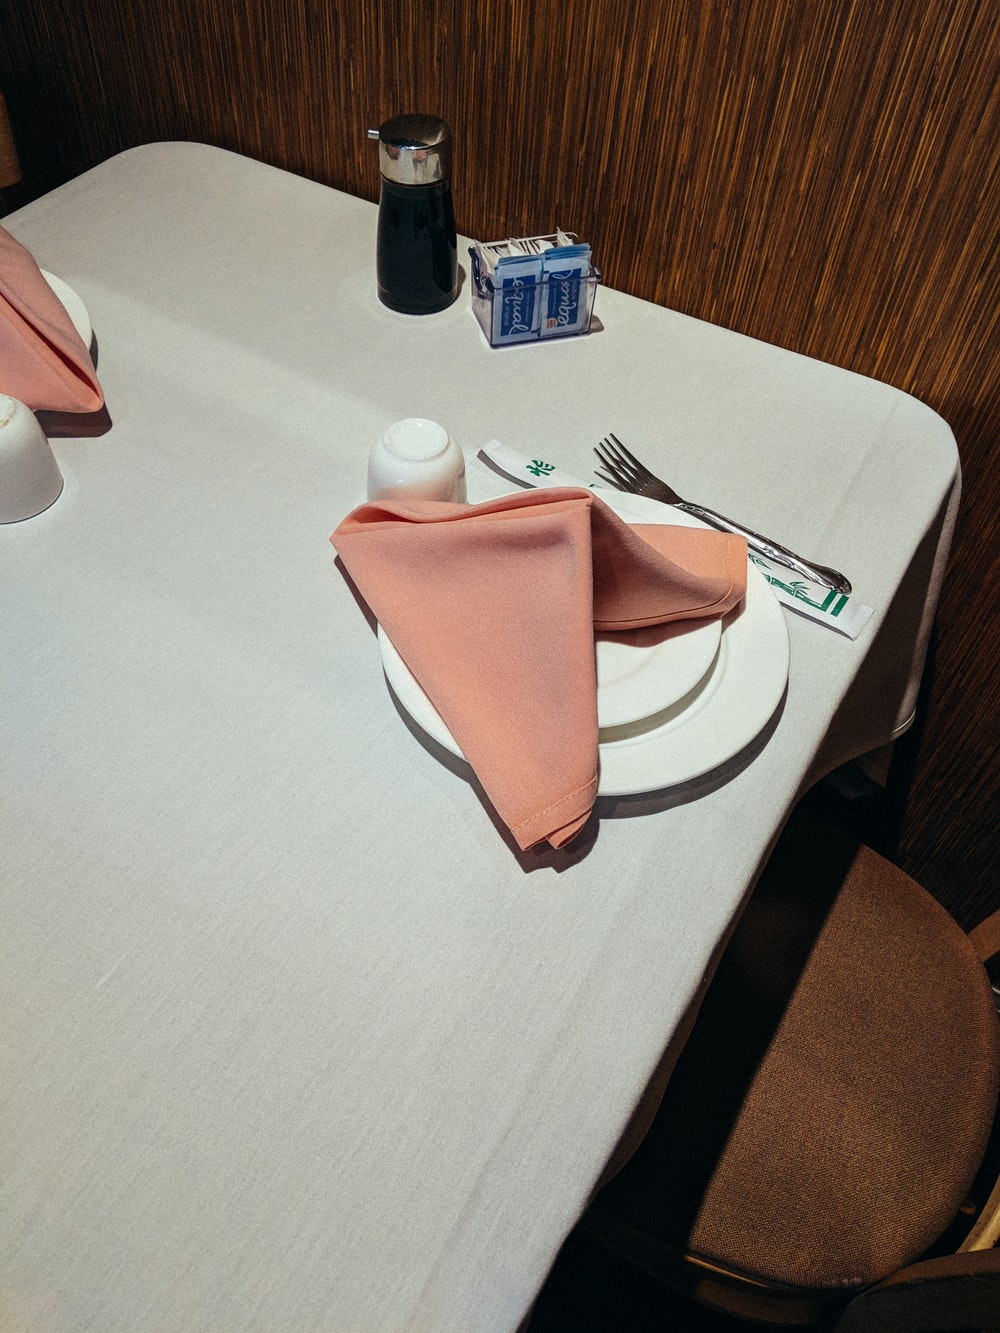 orange table napkin on plate